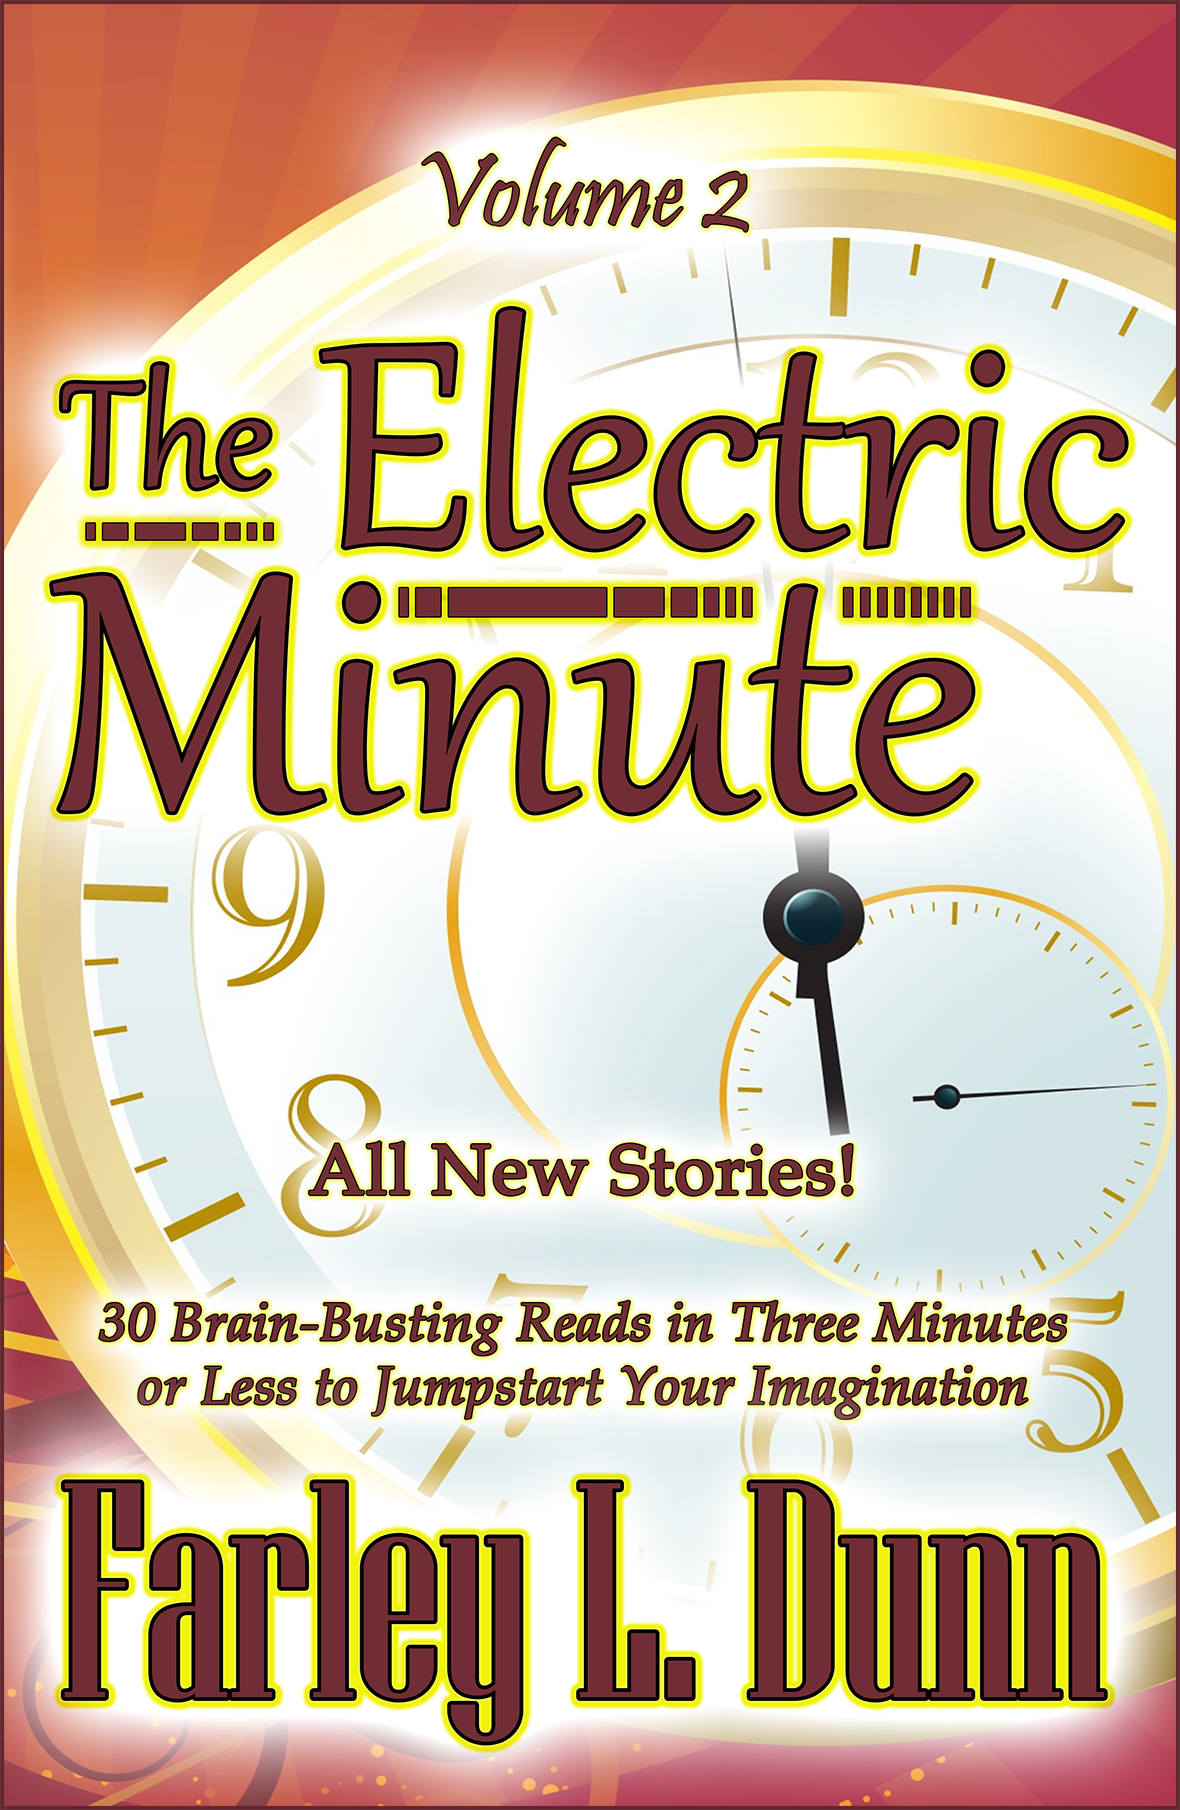 The Electric Minute Cover Vol 2 Front V1